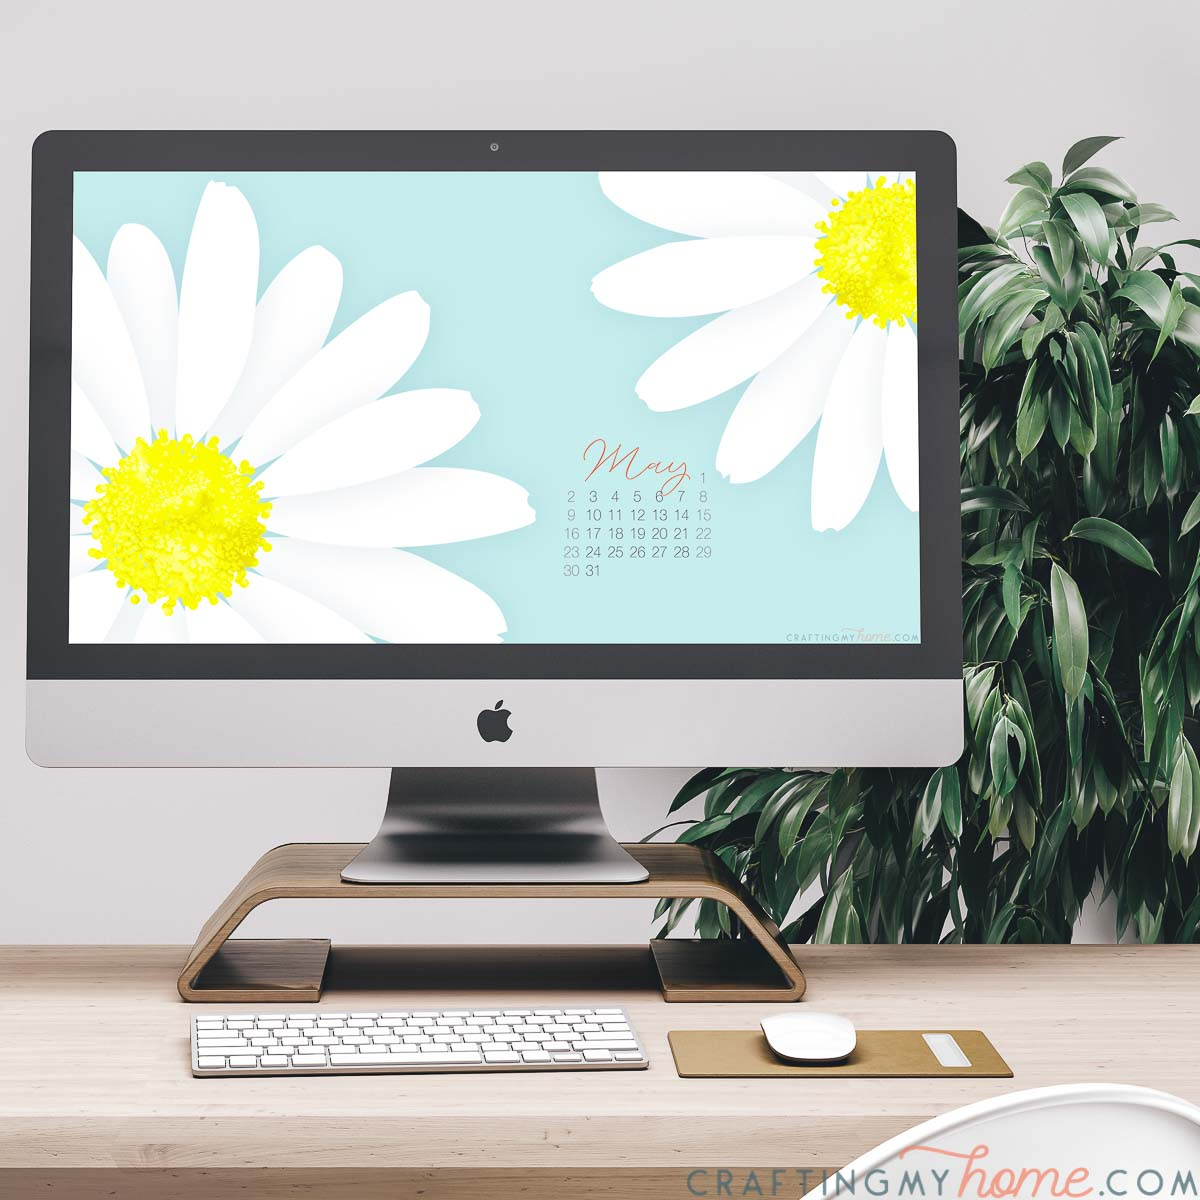 Giant daisy print digital wallpaper with calendar for May on the screen on a computer on a desk in front of a plant.